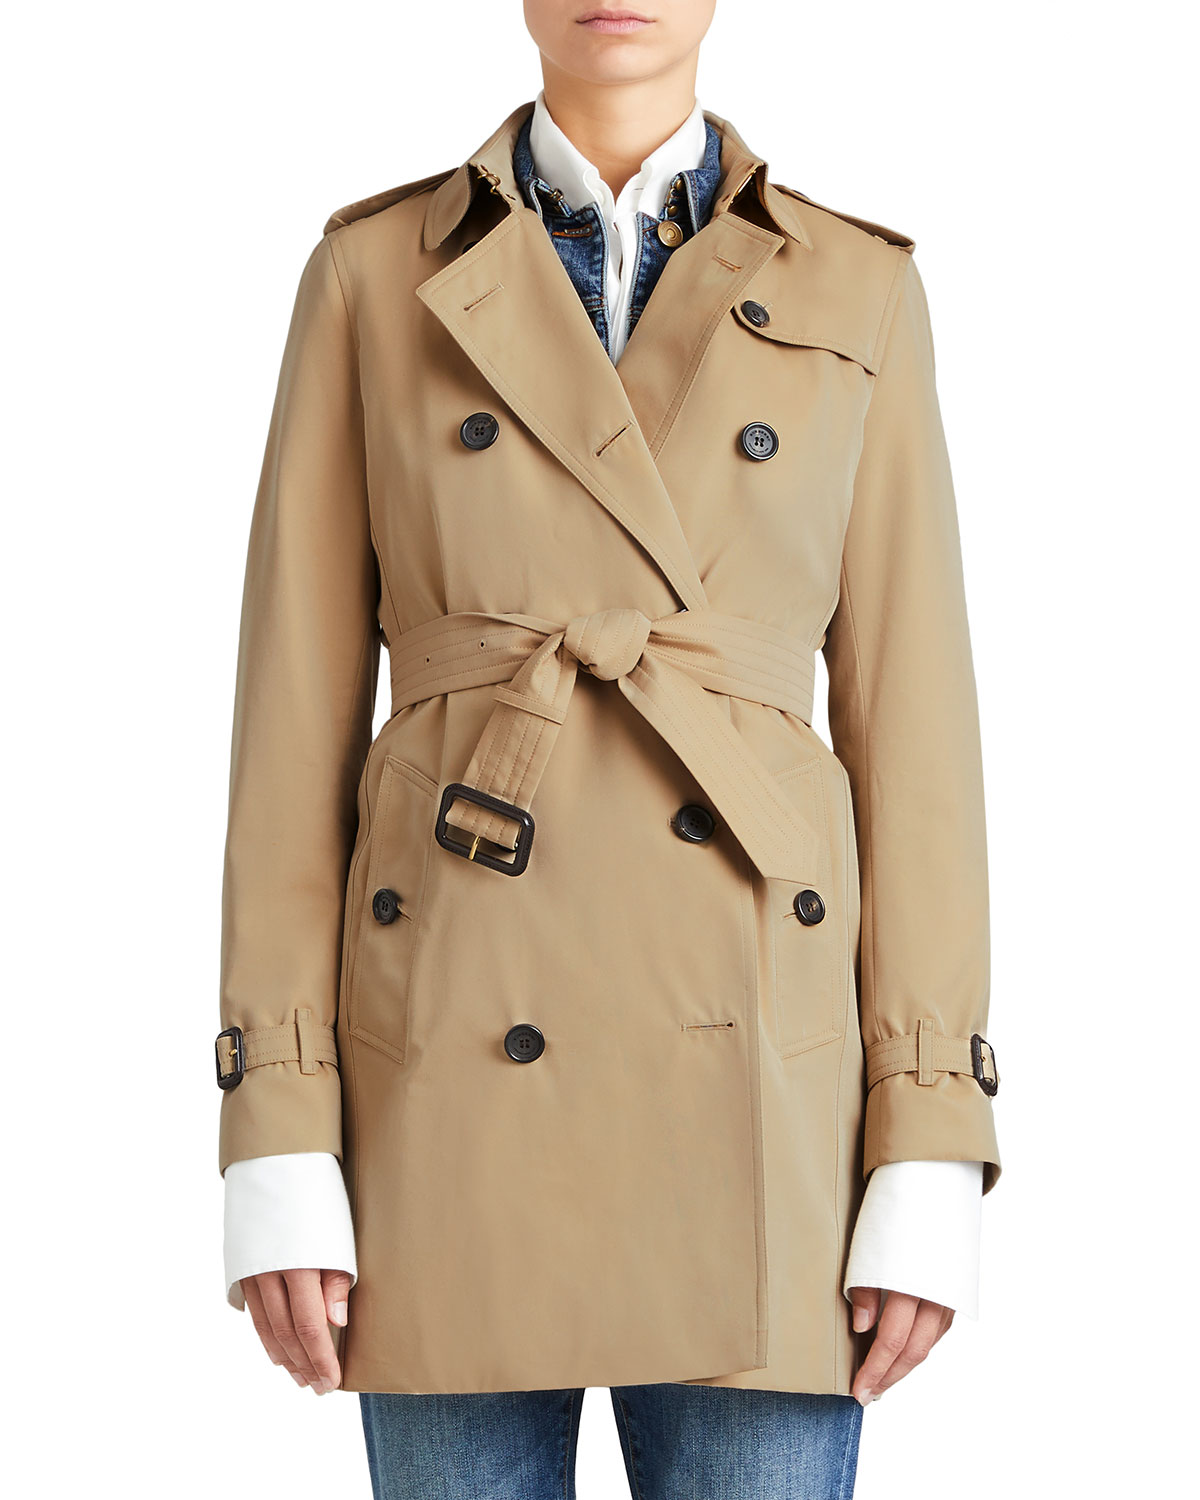 5eabf465093a Burberry The Kensington - Mid-Length Heritage Trench Coat